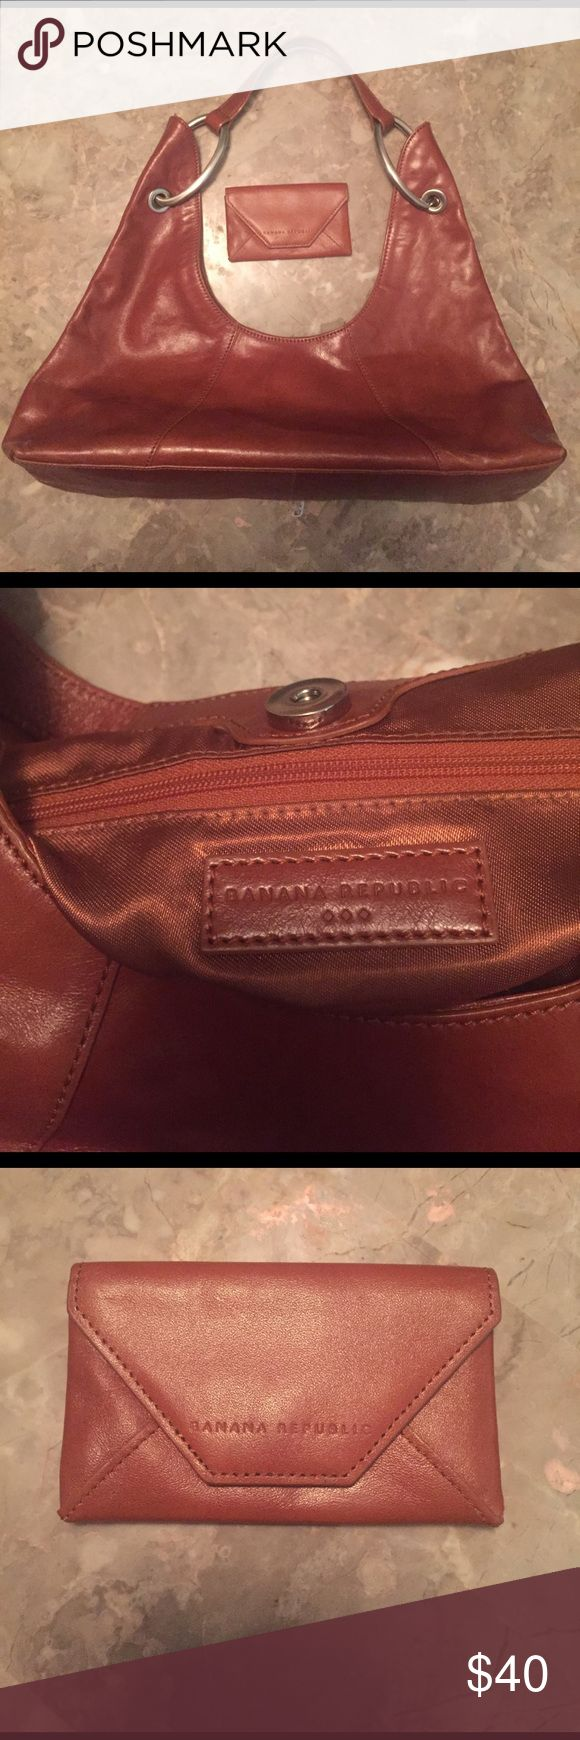 Banana Republic Handbag Banana Republic handbag. Used but in very good condition. Comes with matching cardholder. Small/medium sized Banana Republic Bags Hobos